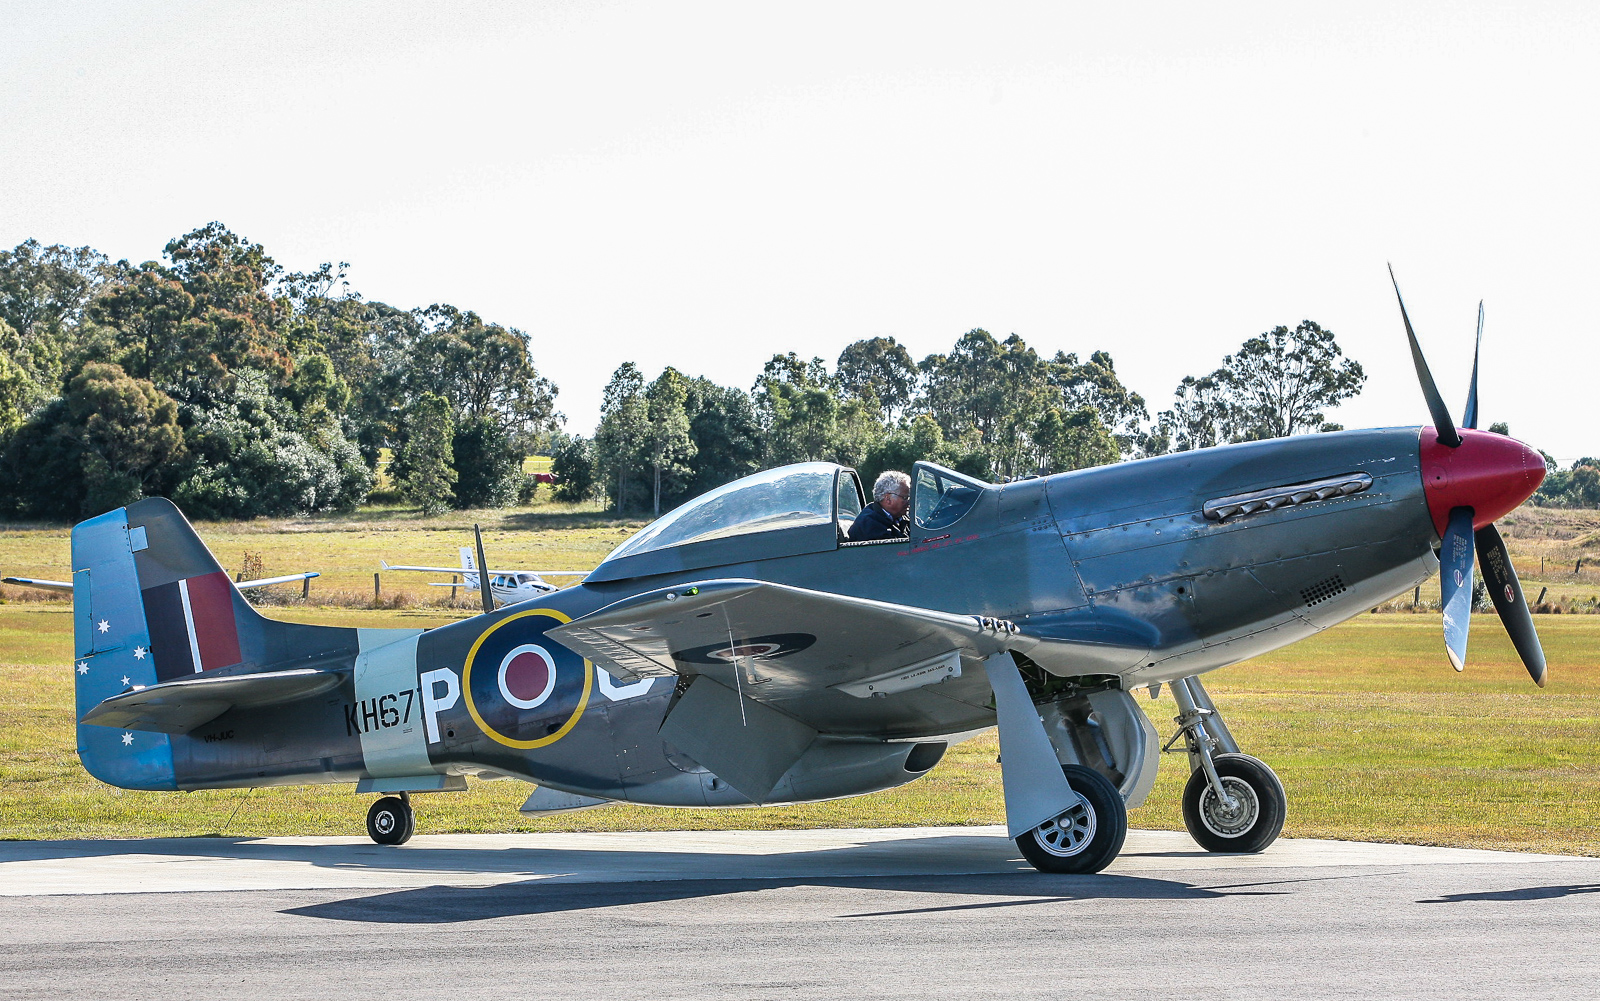 Judy Pay's marvelous CAC-built North American Mustang made a rare appearance at the show. (photo by Phil Buckley)